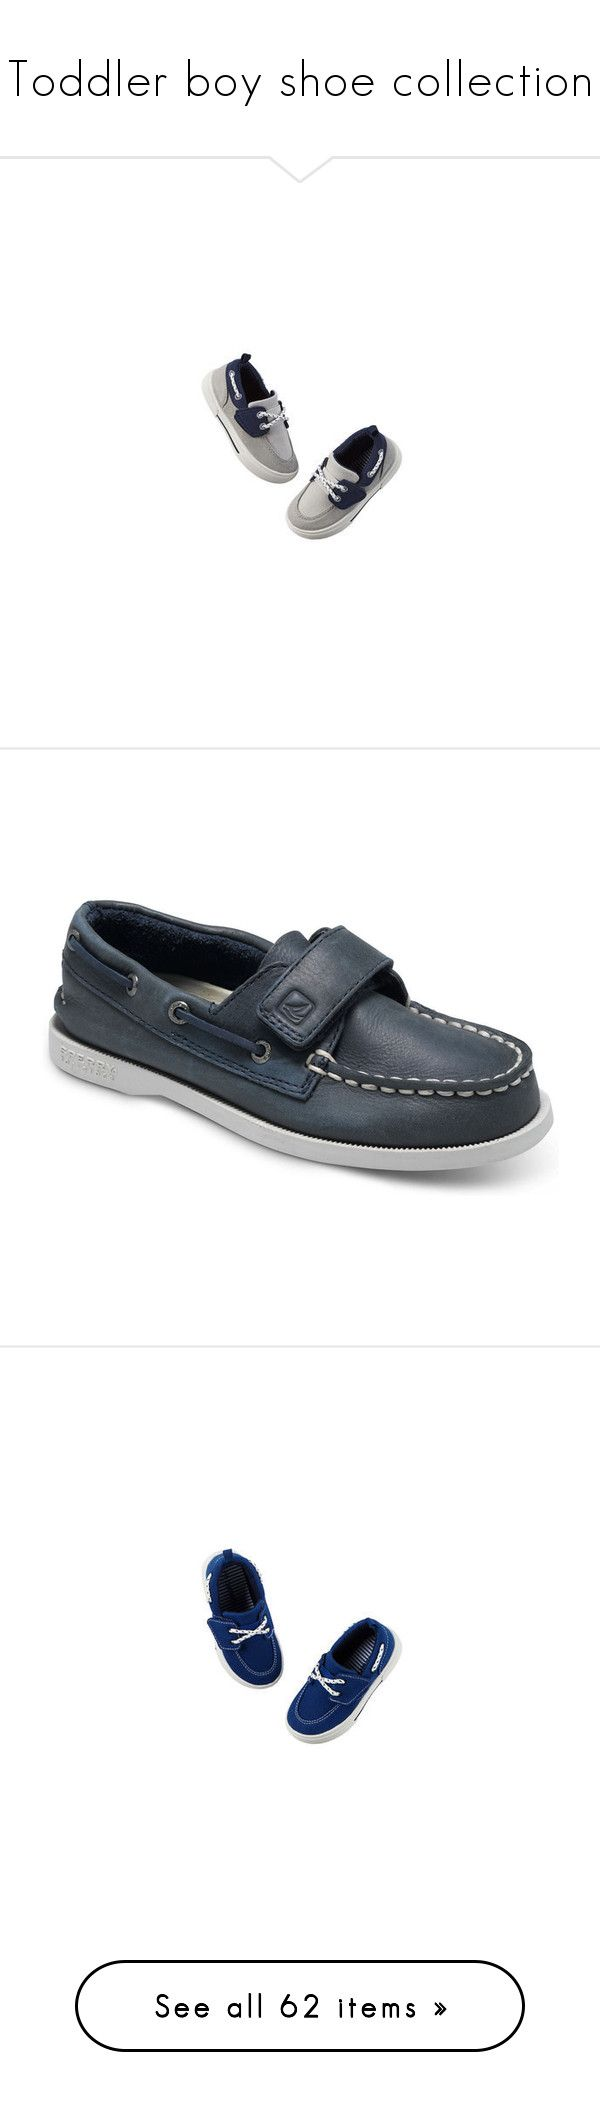 """""""Toddler boy shoe collection"""" by fawn-fleur ❤ liked on Polyvore featuring sperry, toddler boy, navy leather, kids, shoes, sneakers, baby, baby boy, vans shoes and lace up high top sneakers"""